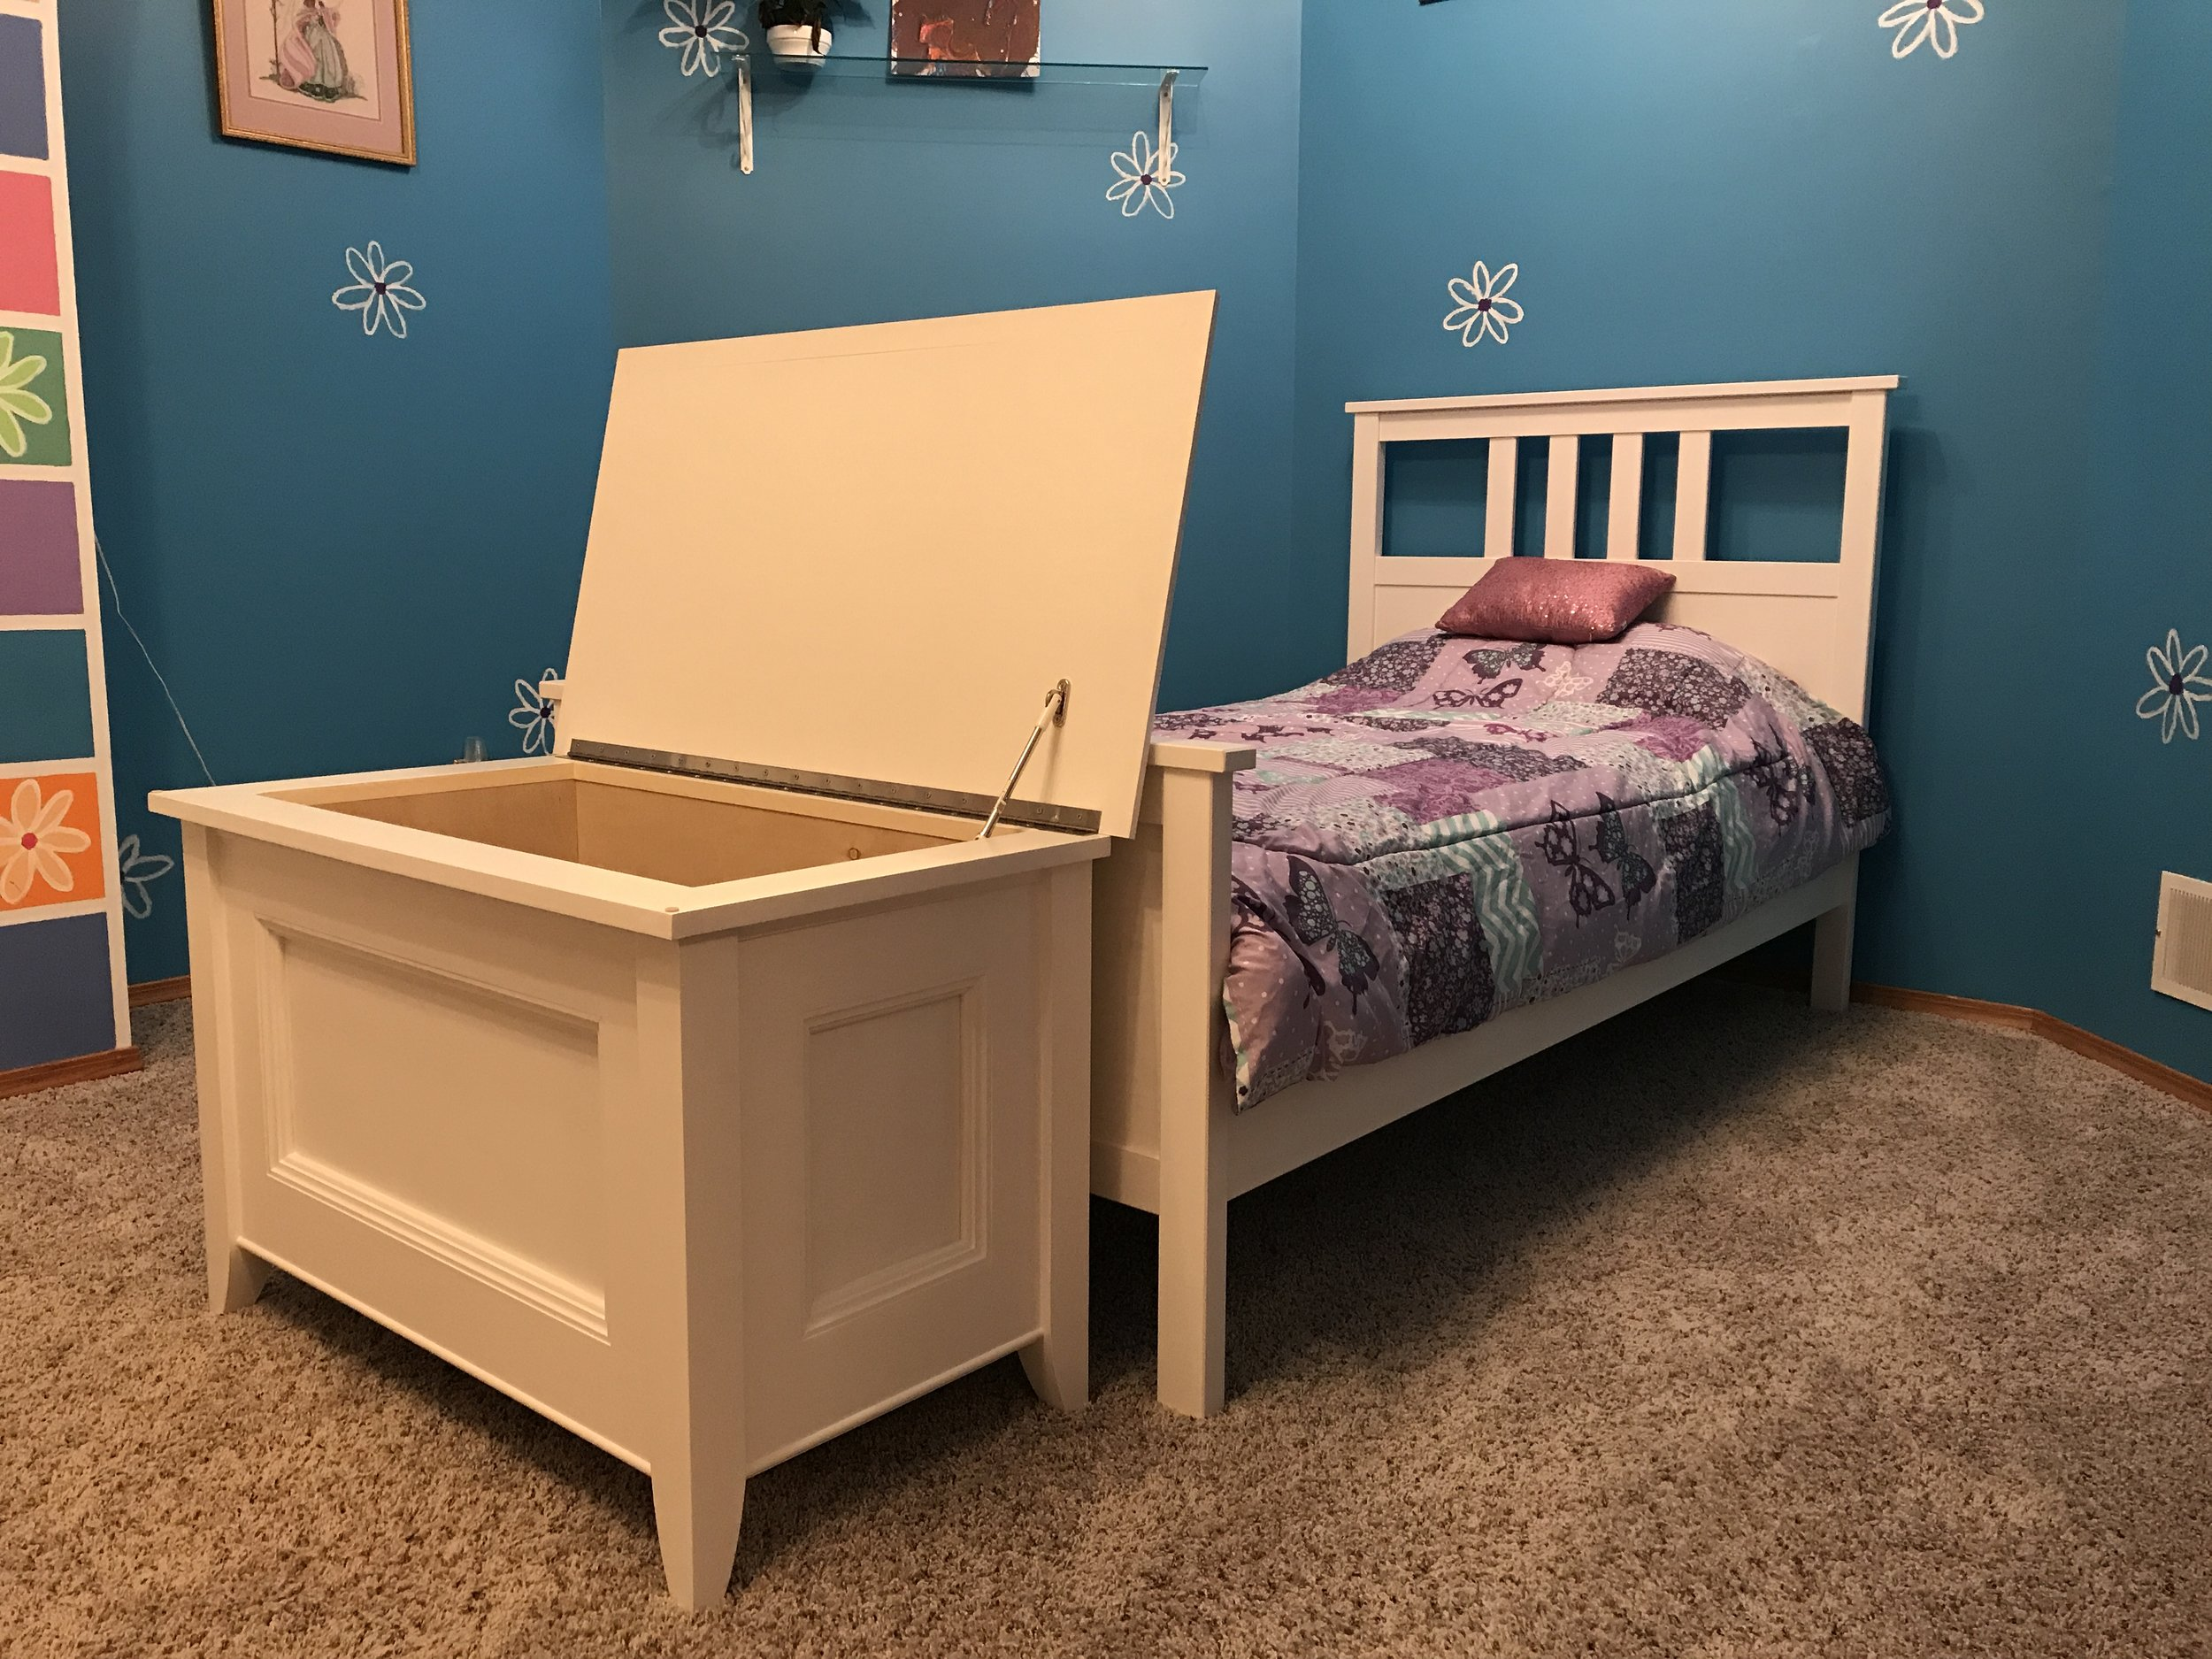 Blanket Chest Toy Box Corner with Bed Open